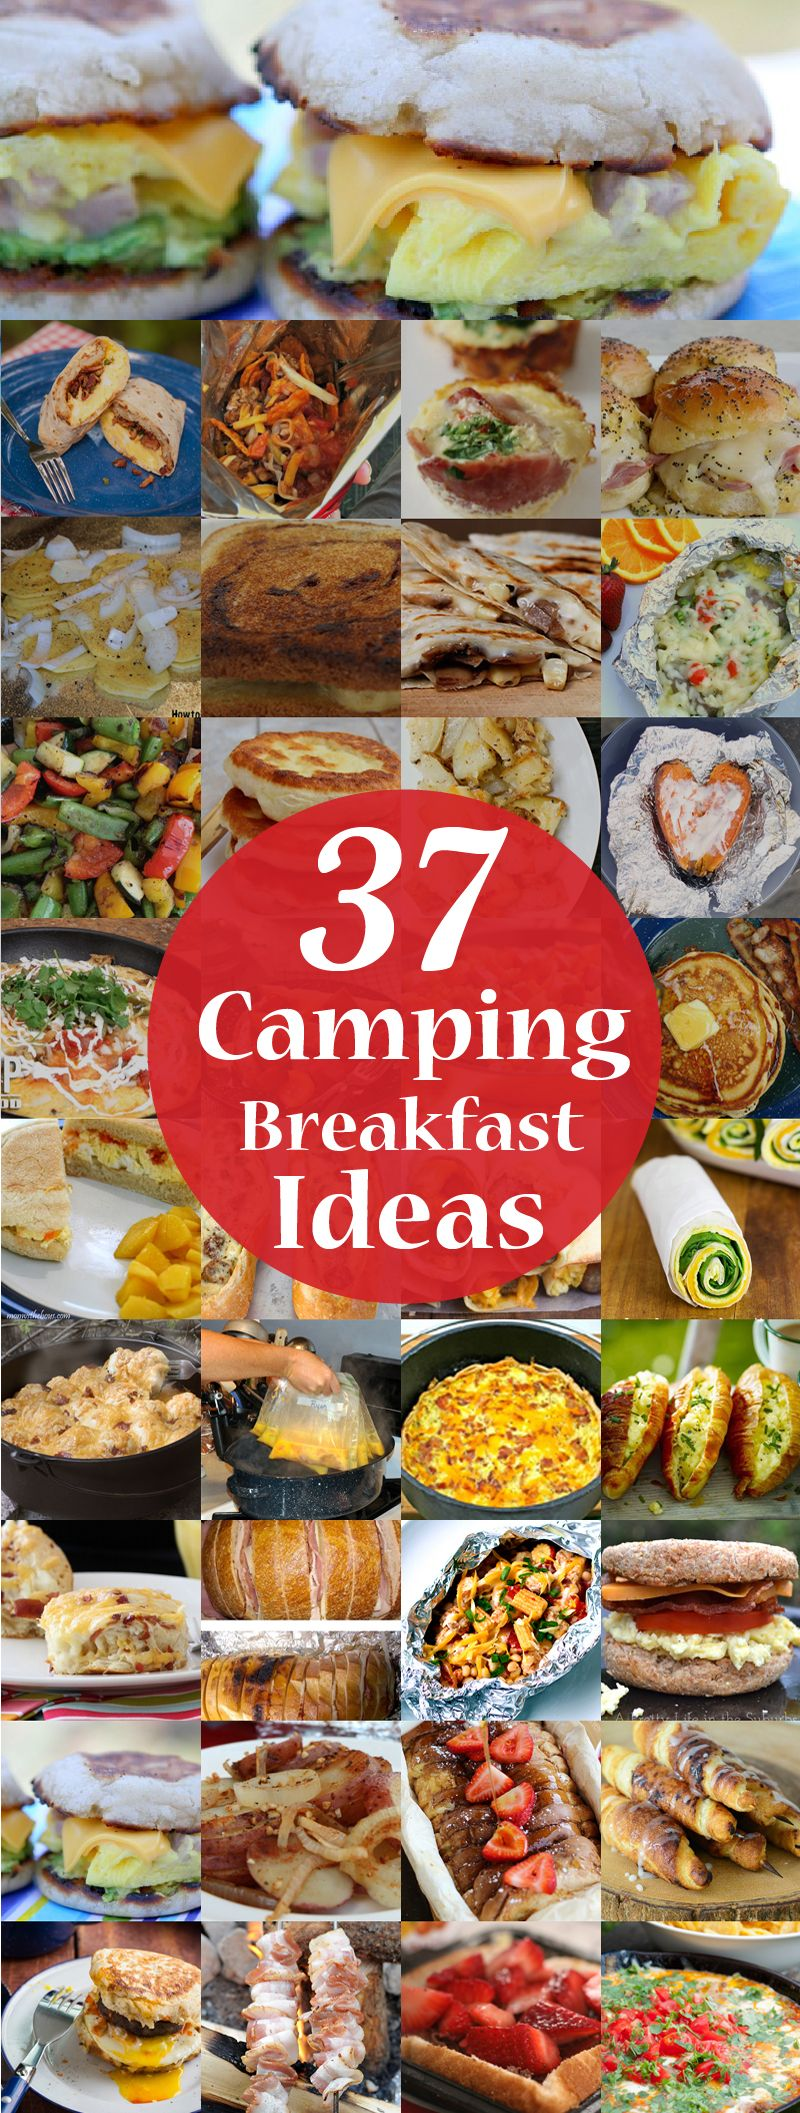 It May Surprise You To Know That Can Eat Well Even When Youre Camping Sure Could Stick Some Muffins And Fruit In Your Camp Gear Call Good